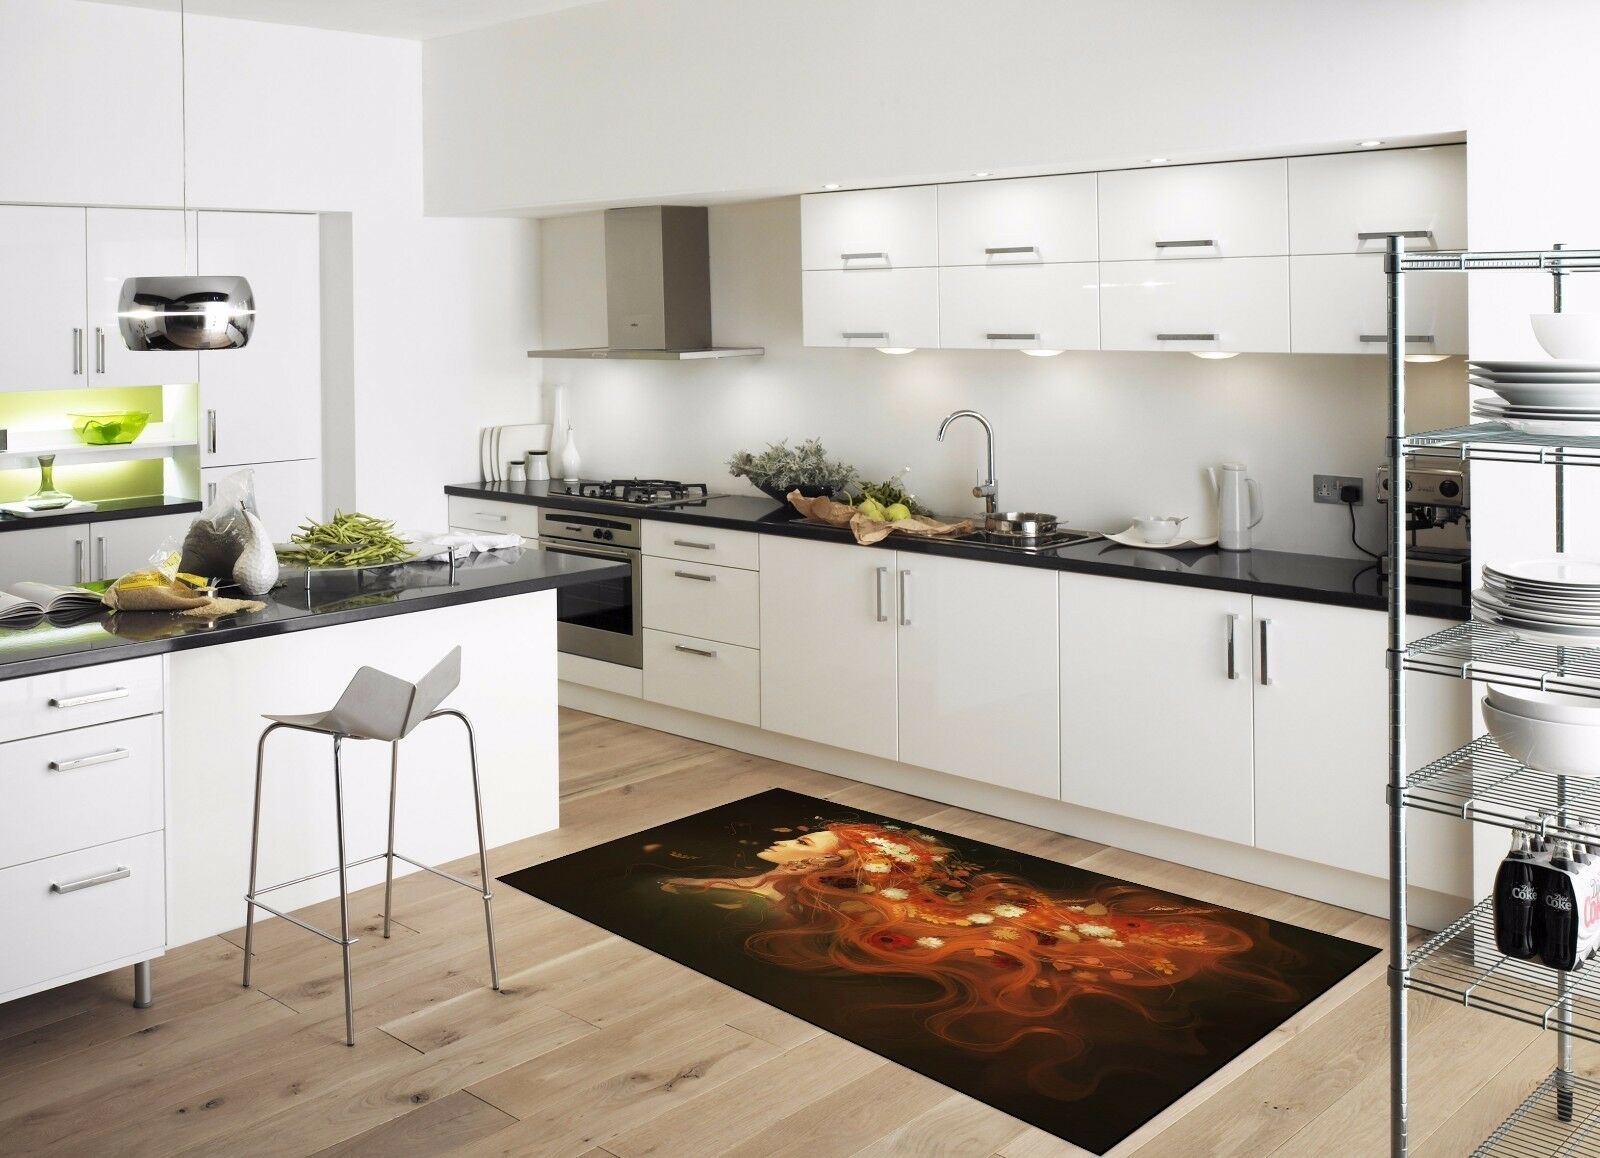 3D Long Hair Girl7 Kitchen Mat Floor Murals Wall Print Wall AJ WALLPAPER AU Kyra